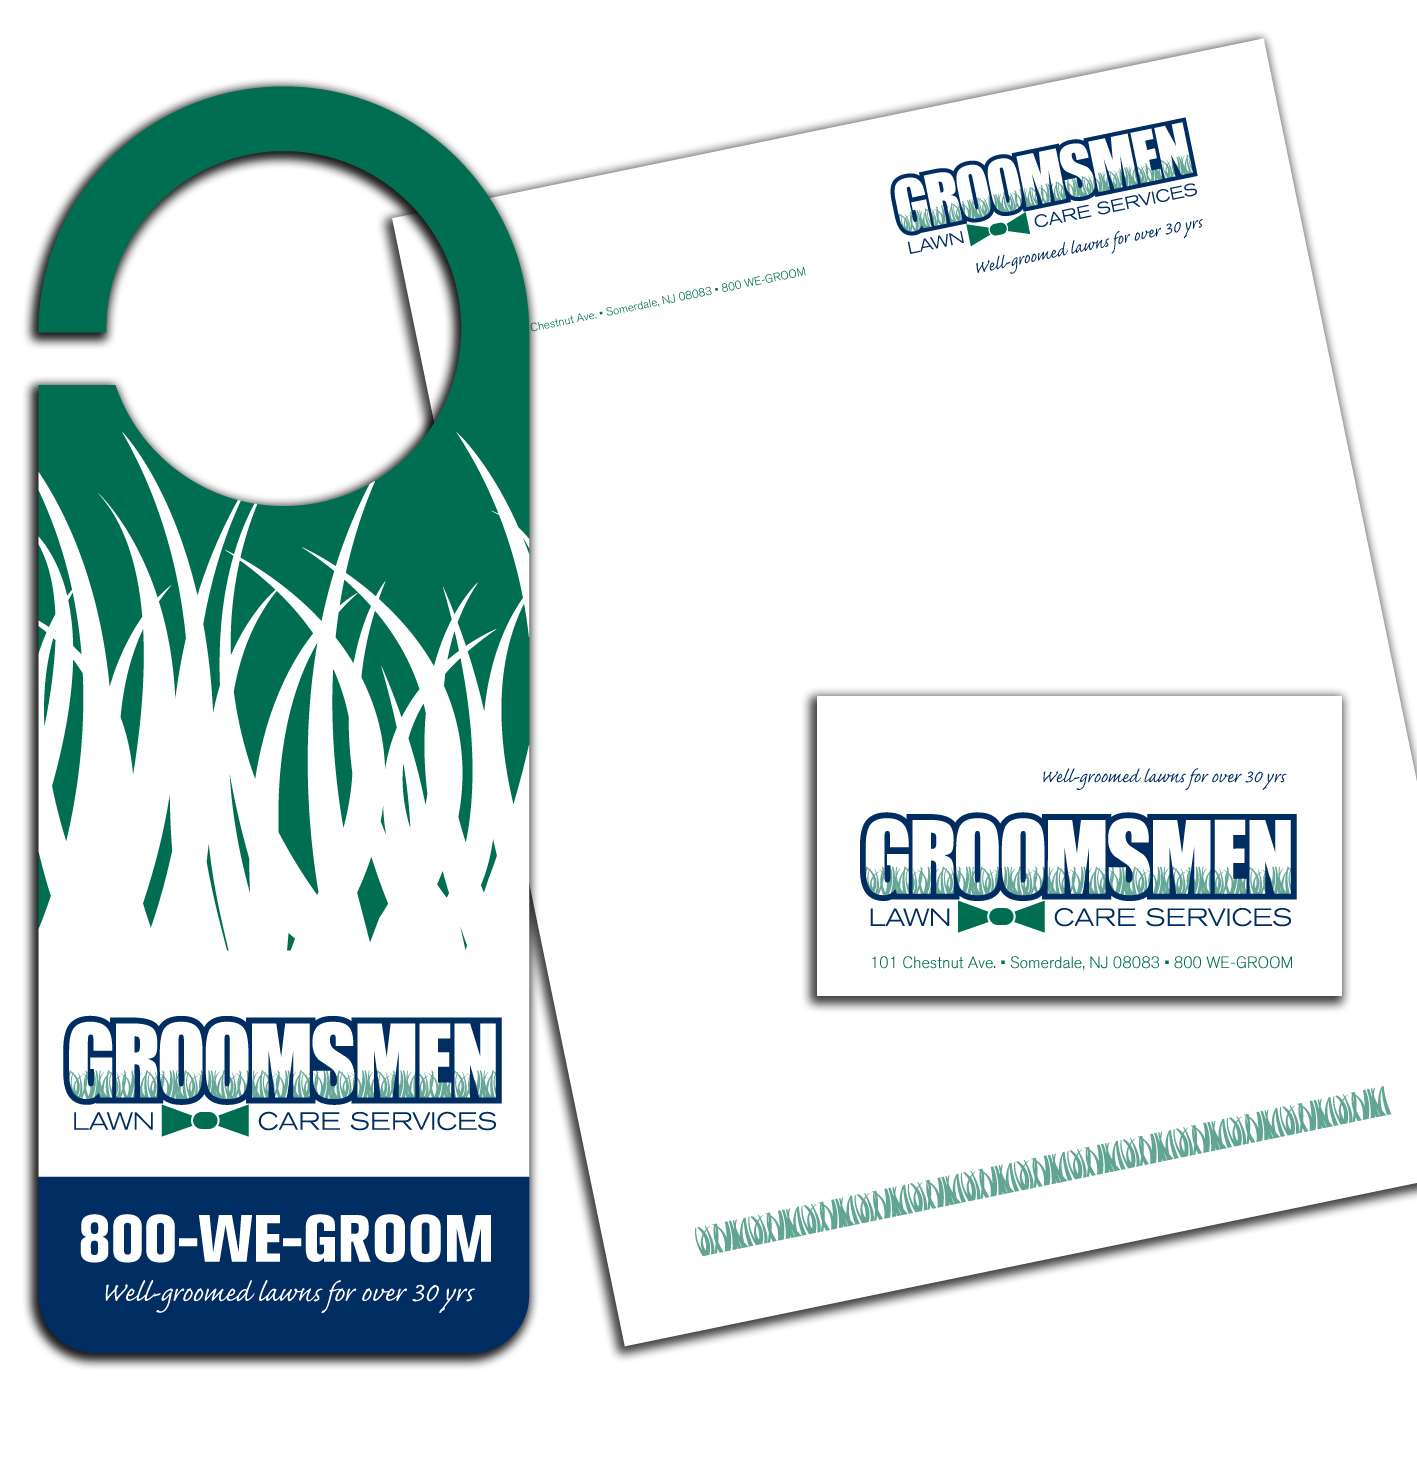 Lawn care business card templates lawn mowing landscaping business excellent custom card template lawn care business cards templates free lawn care business cards groomsmen lawn with lawn care business card templates accmission Images